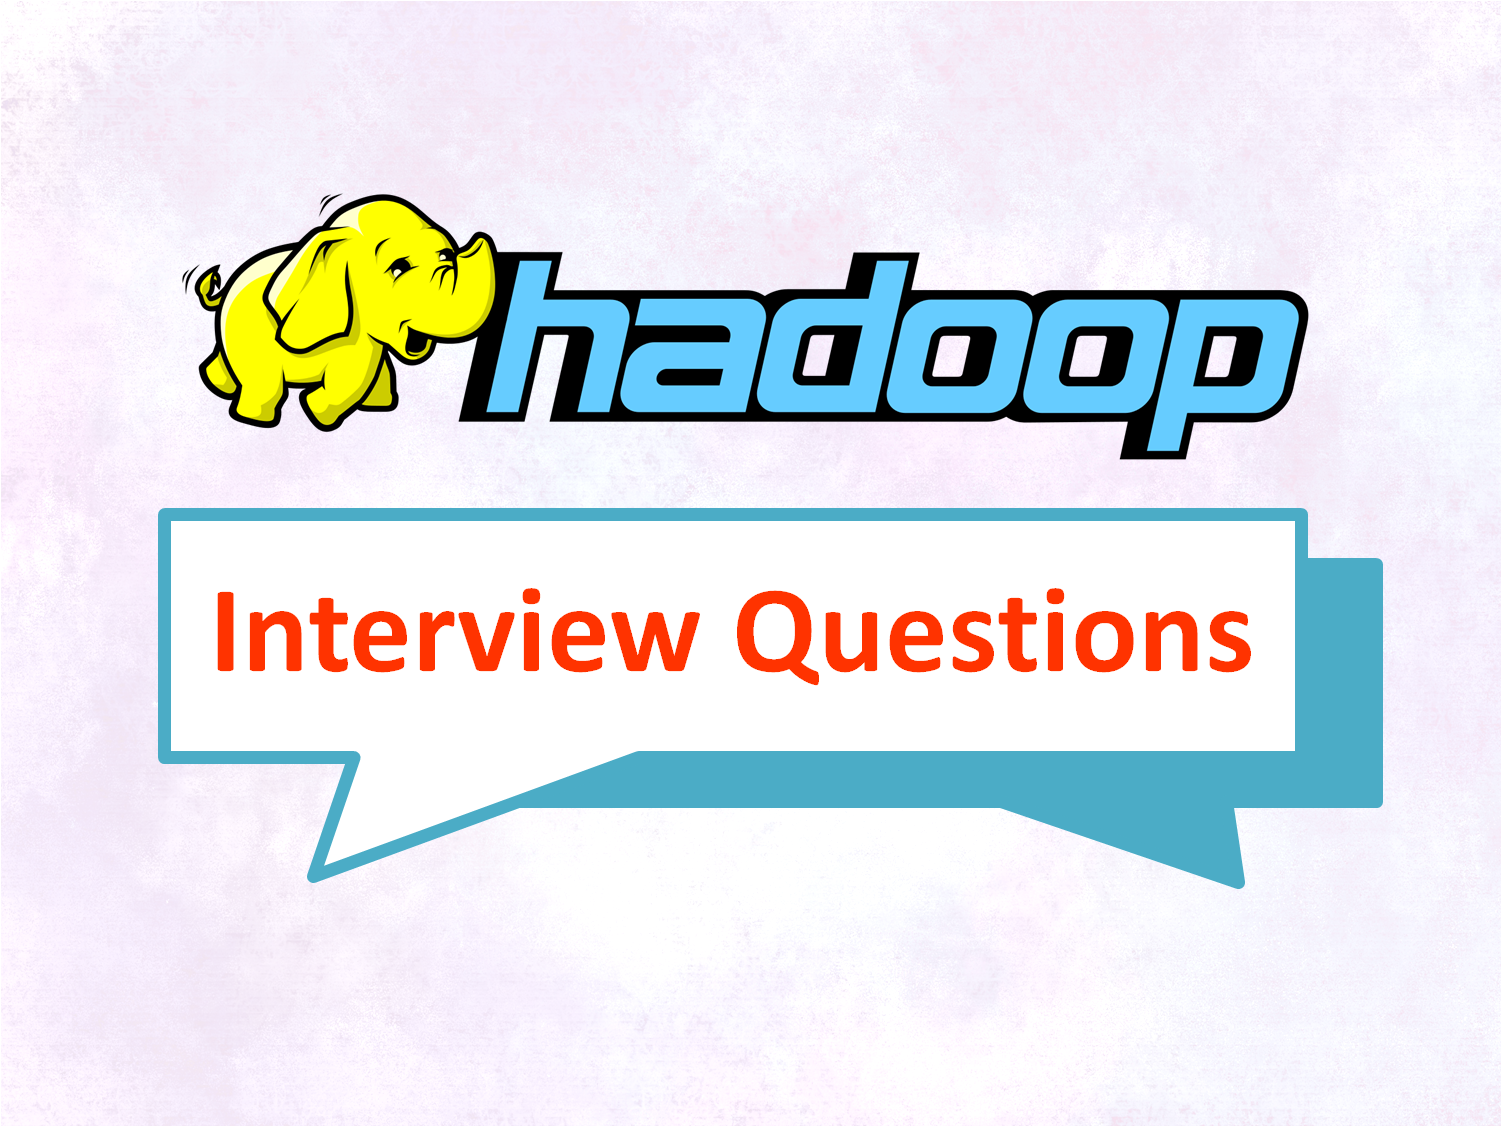 20 Big Data & Hadoop Questions to excel in your Interview - Image 1